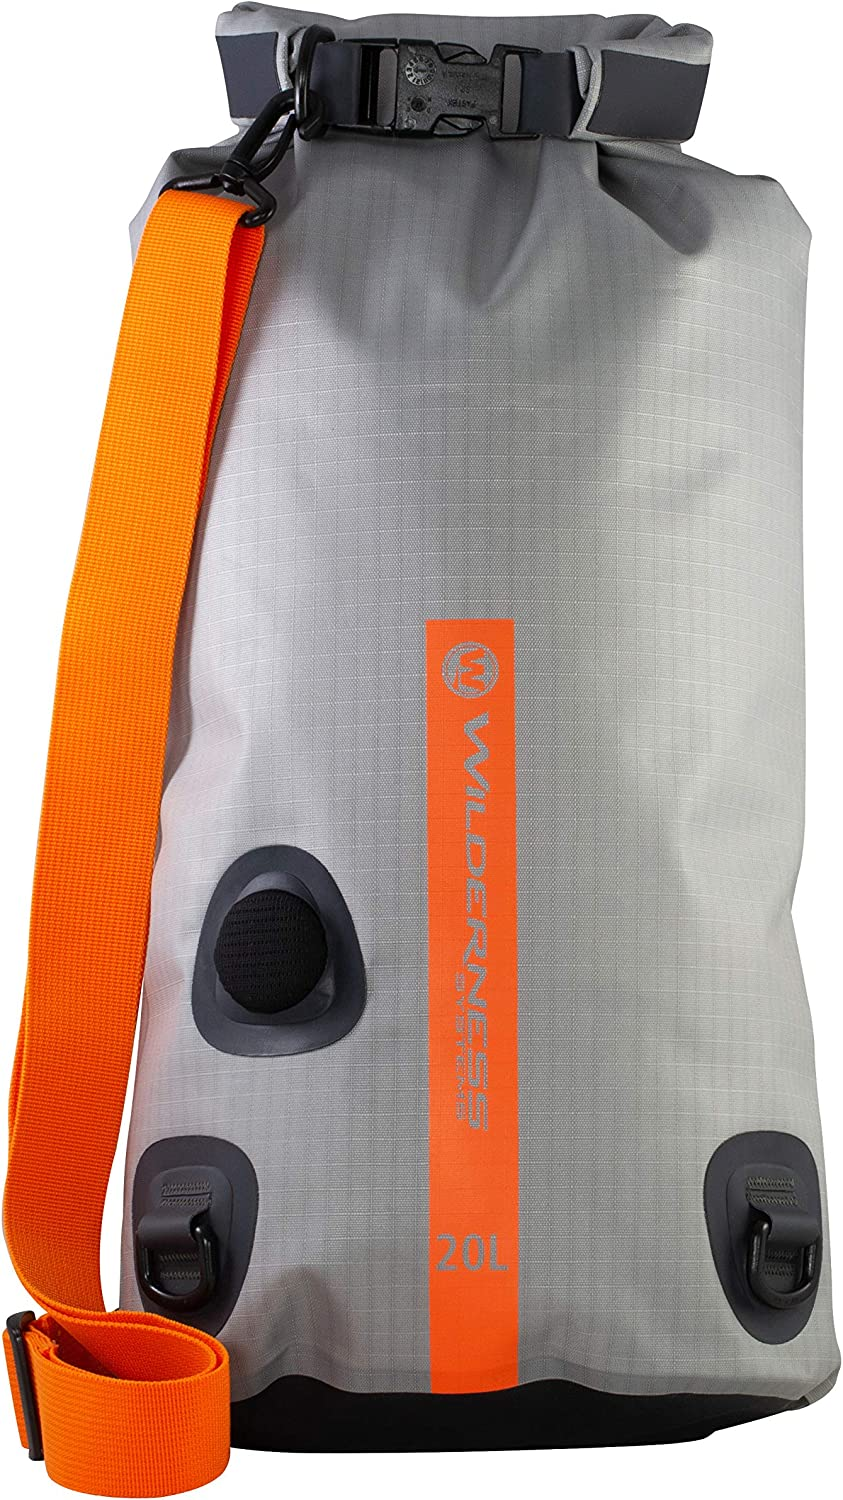 Limited Special Price Wilderness Systems Waterproof XPEL Dry with Bag Valve Free Shipping Cheap Bargain Gift Shoulder